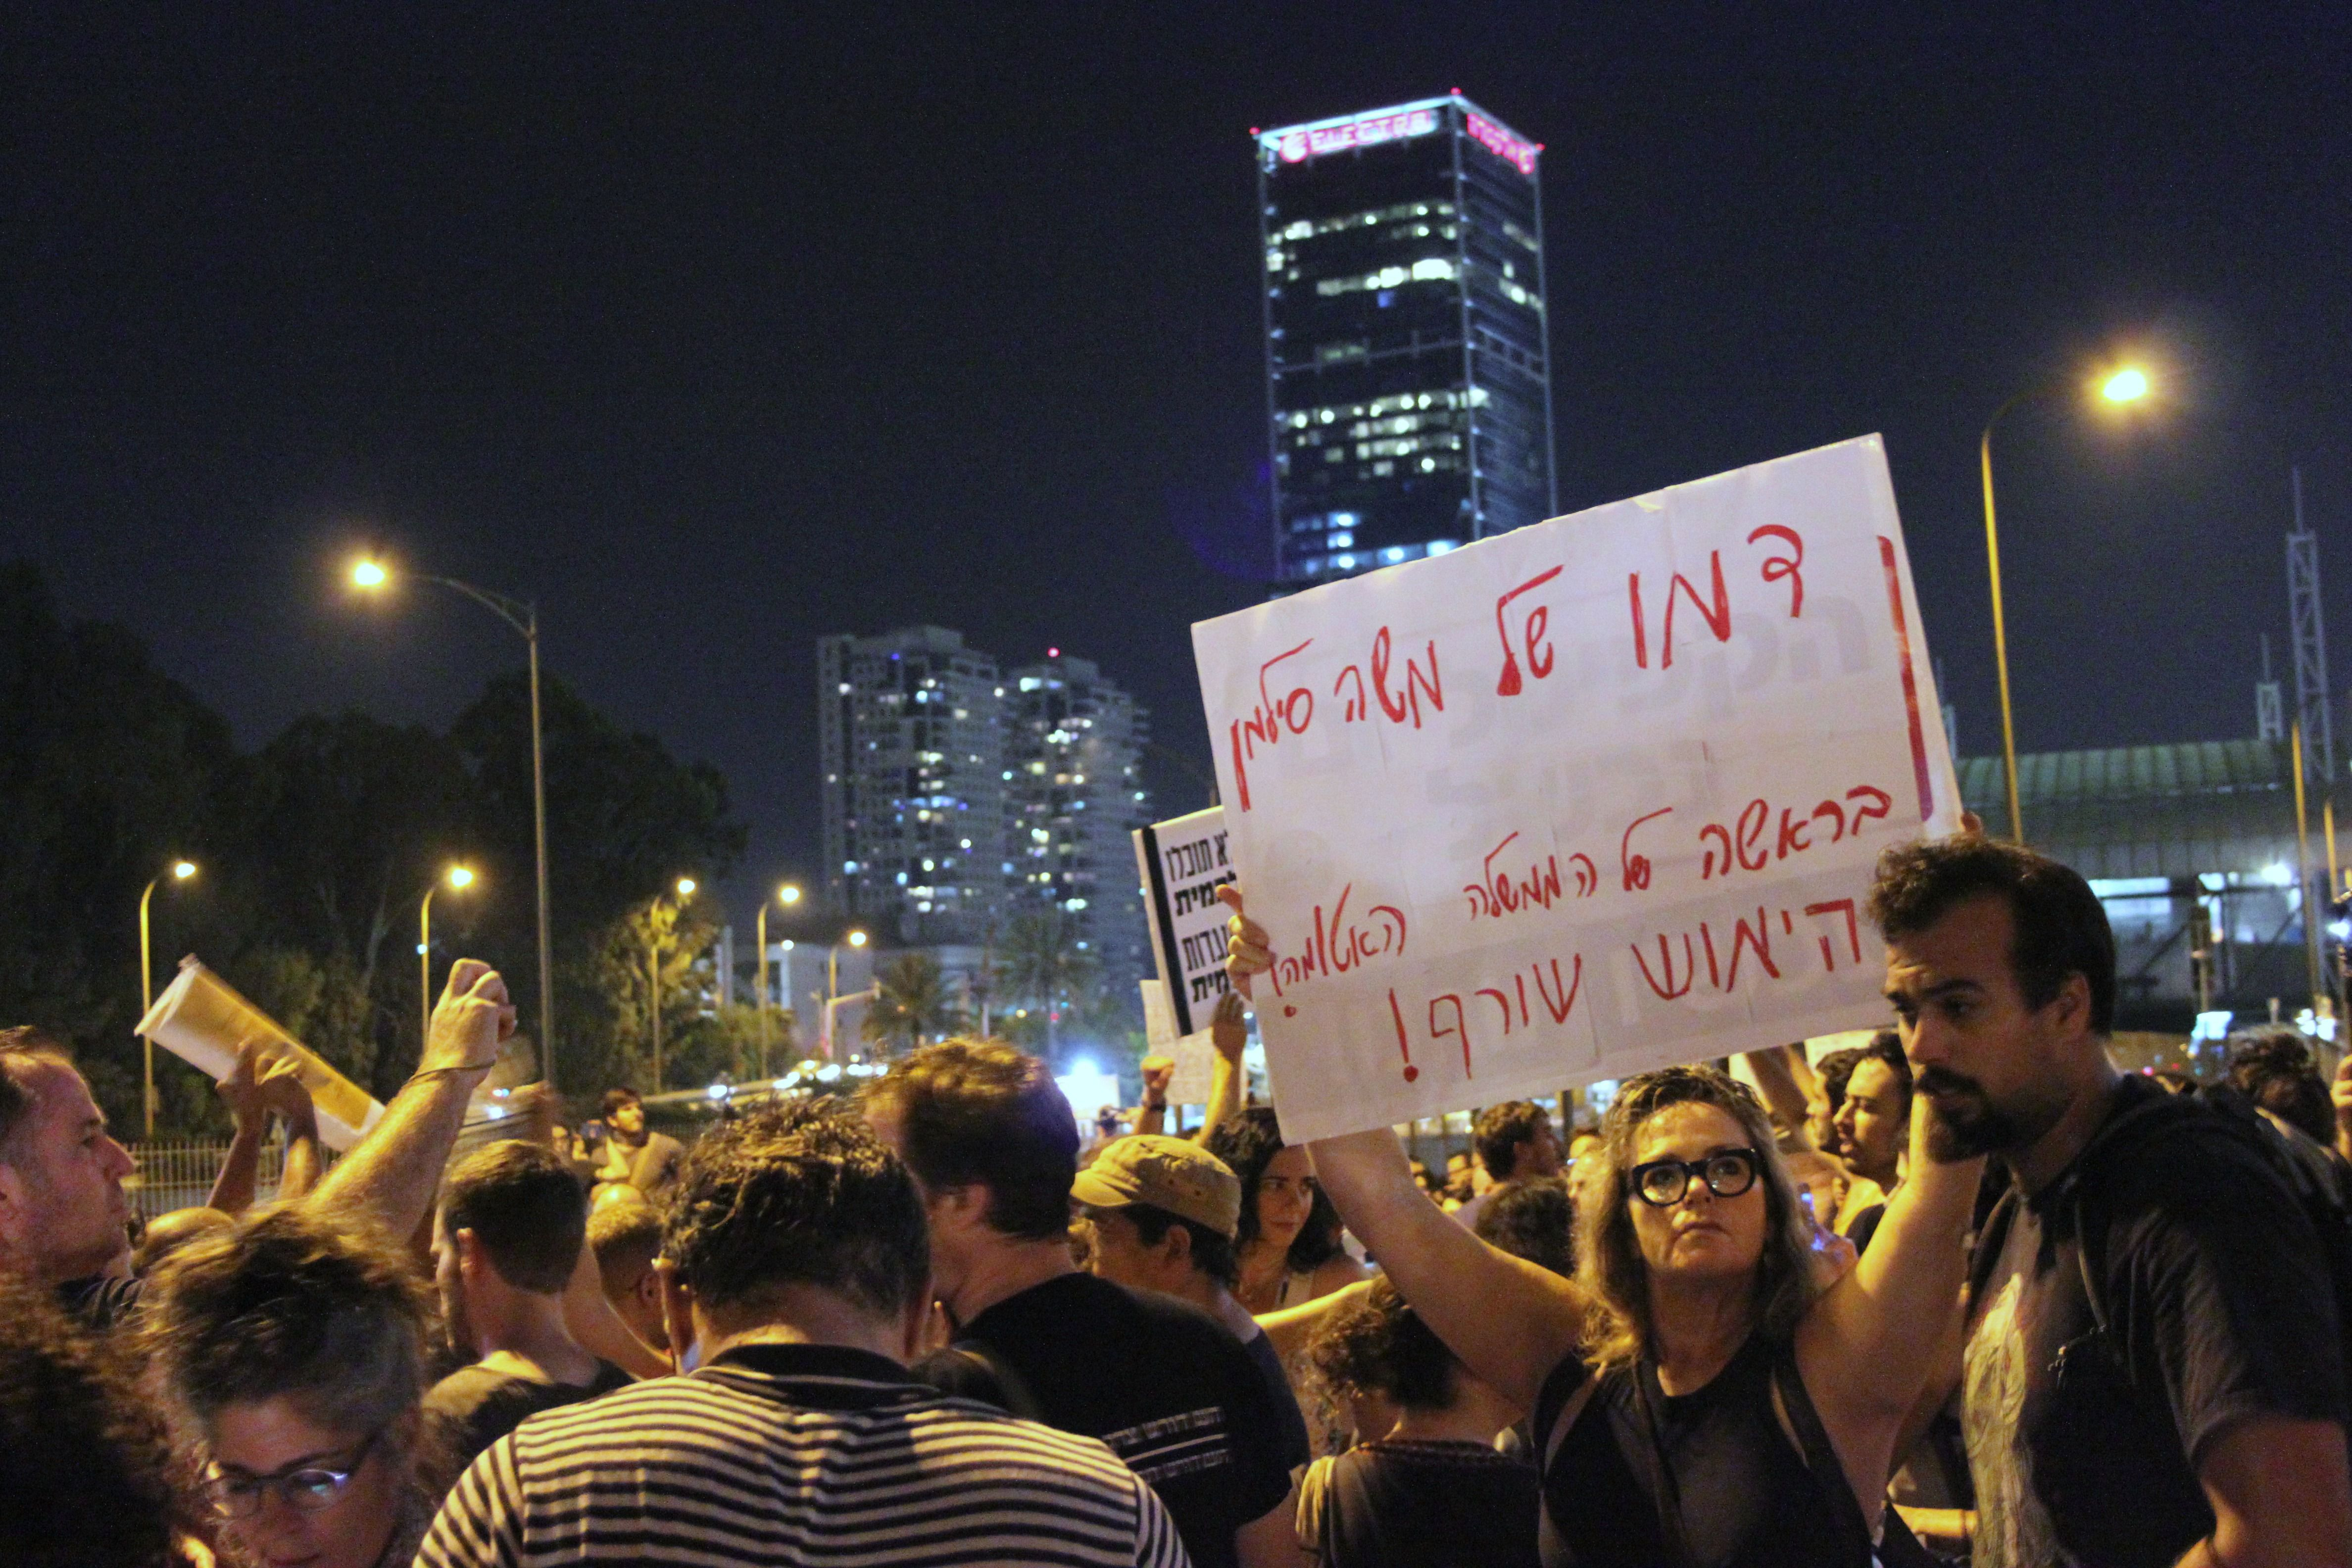 Demonstration for social justice in Tel Aviv, Israel, July 15, 2012.